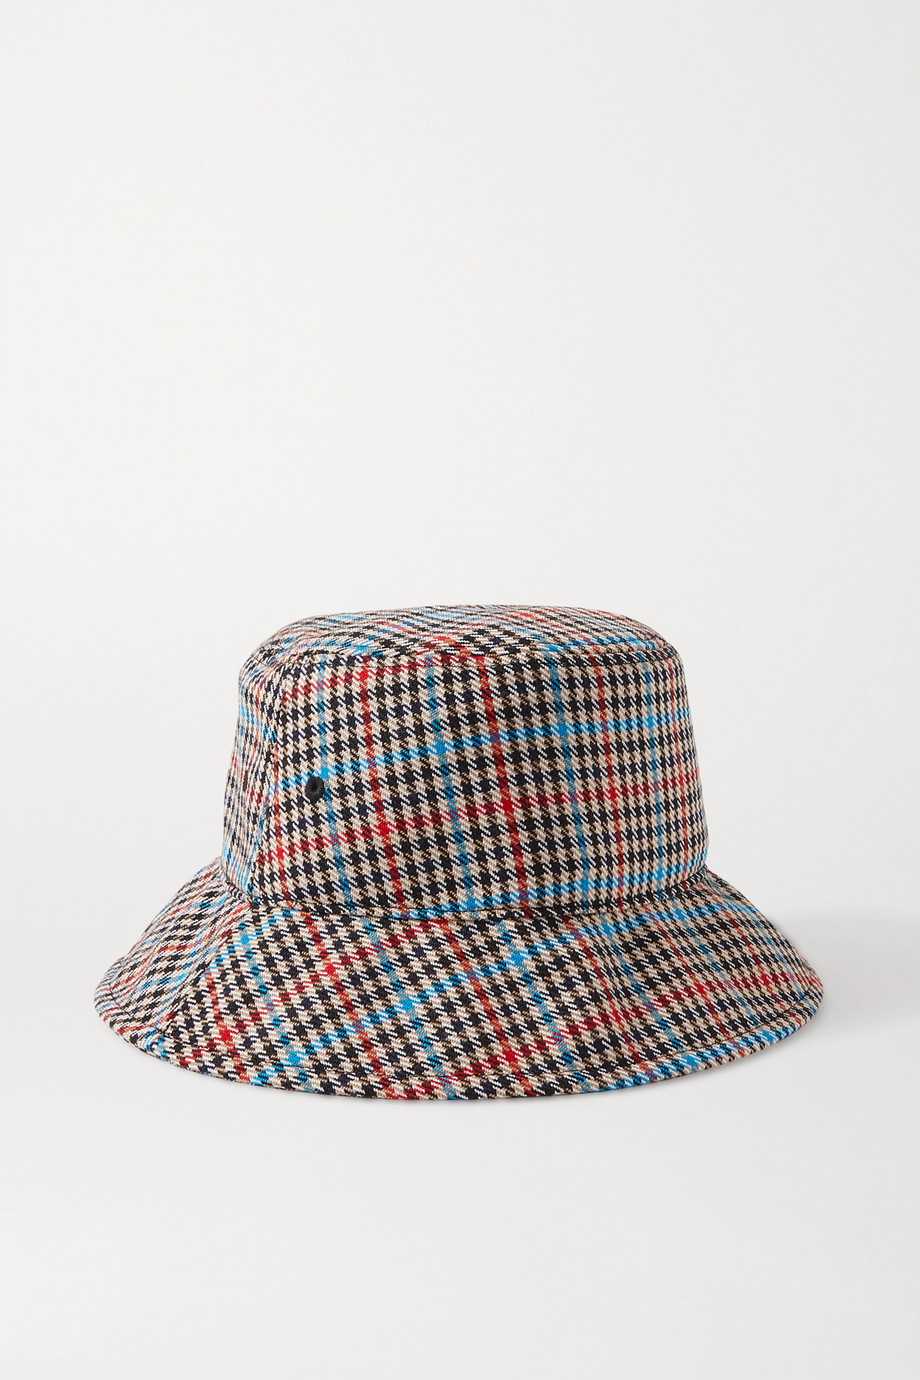 랙앤본 Rag & Bone Houndstooth wool-blend bucket hat,Black